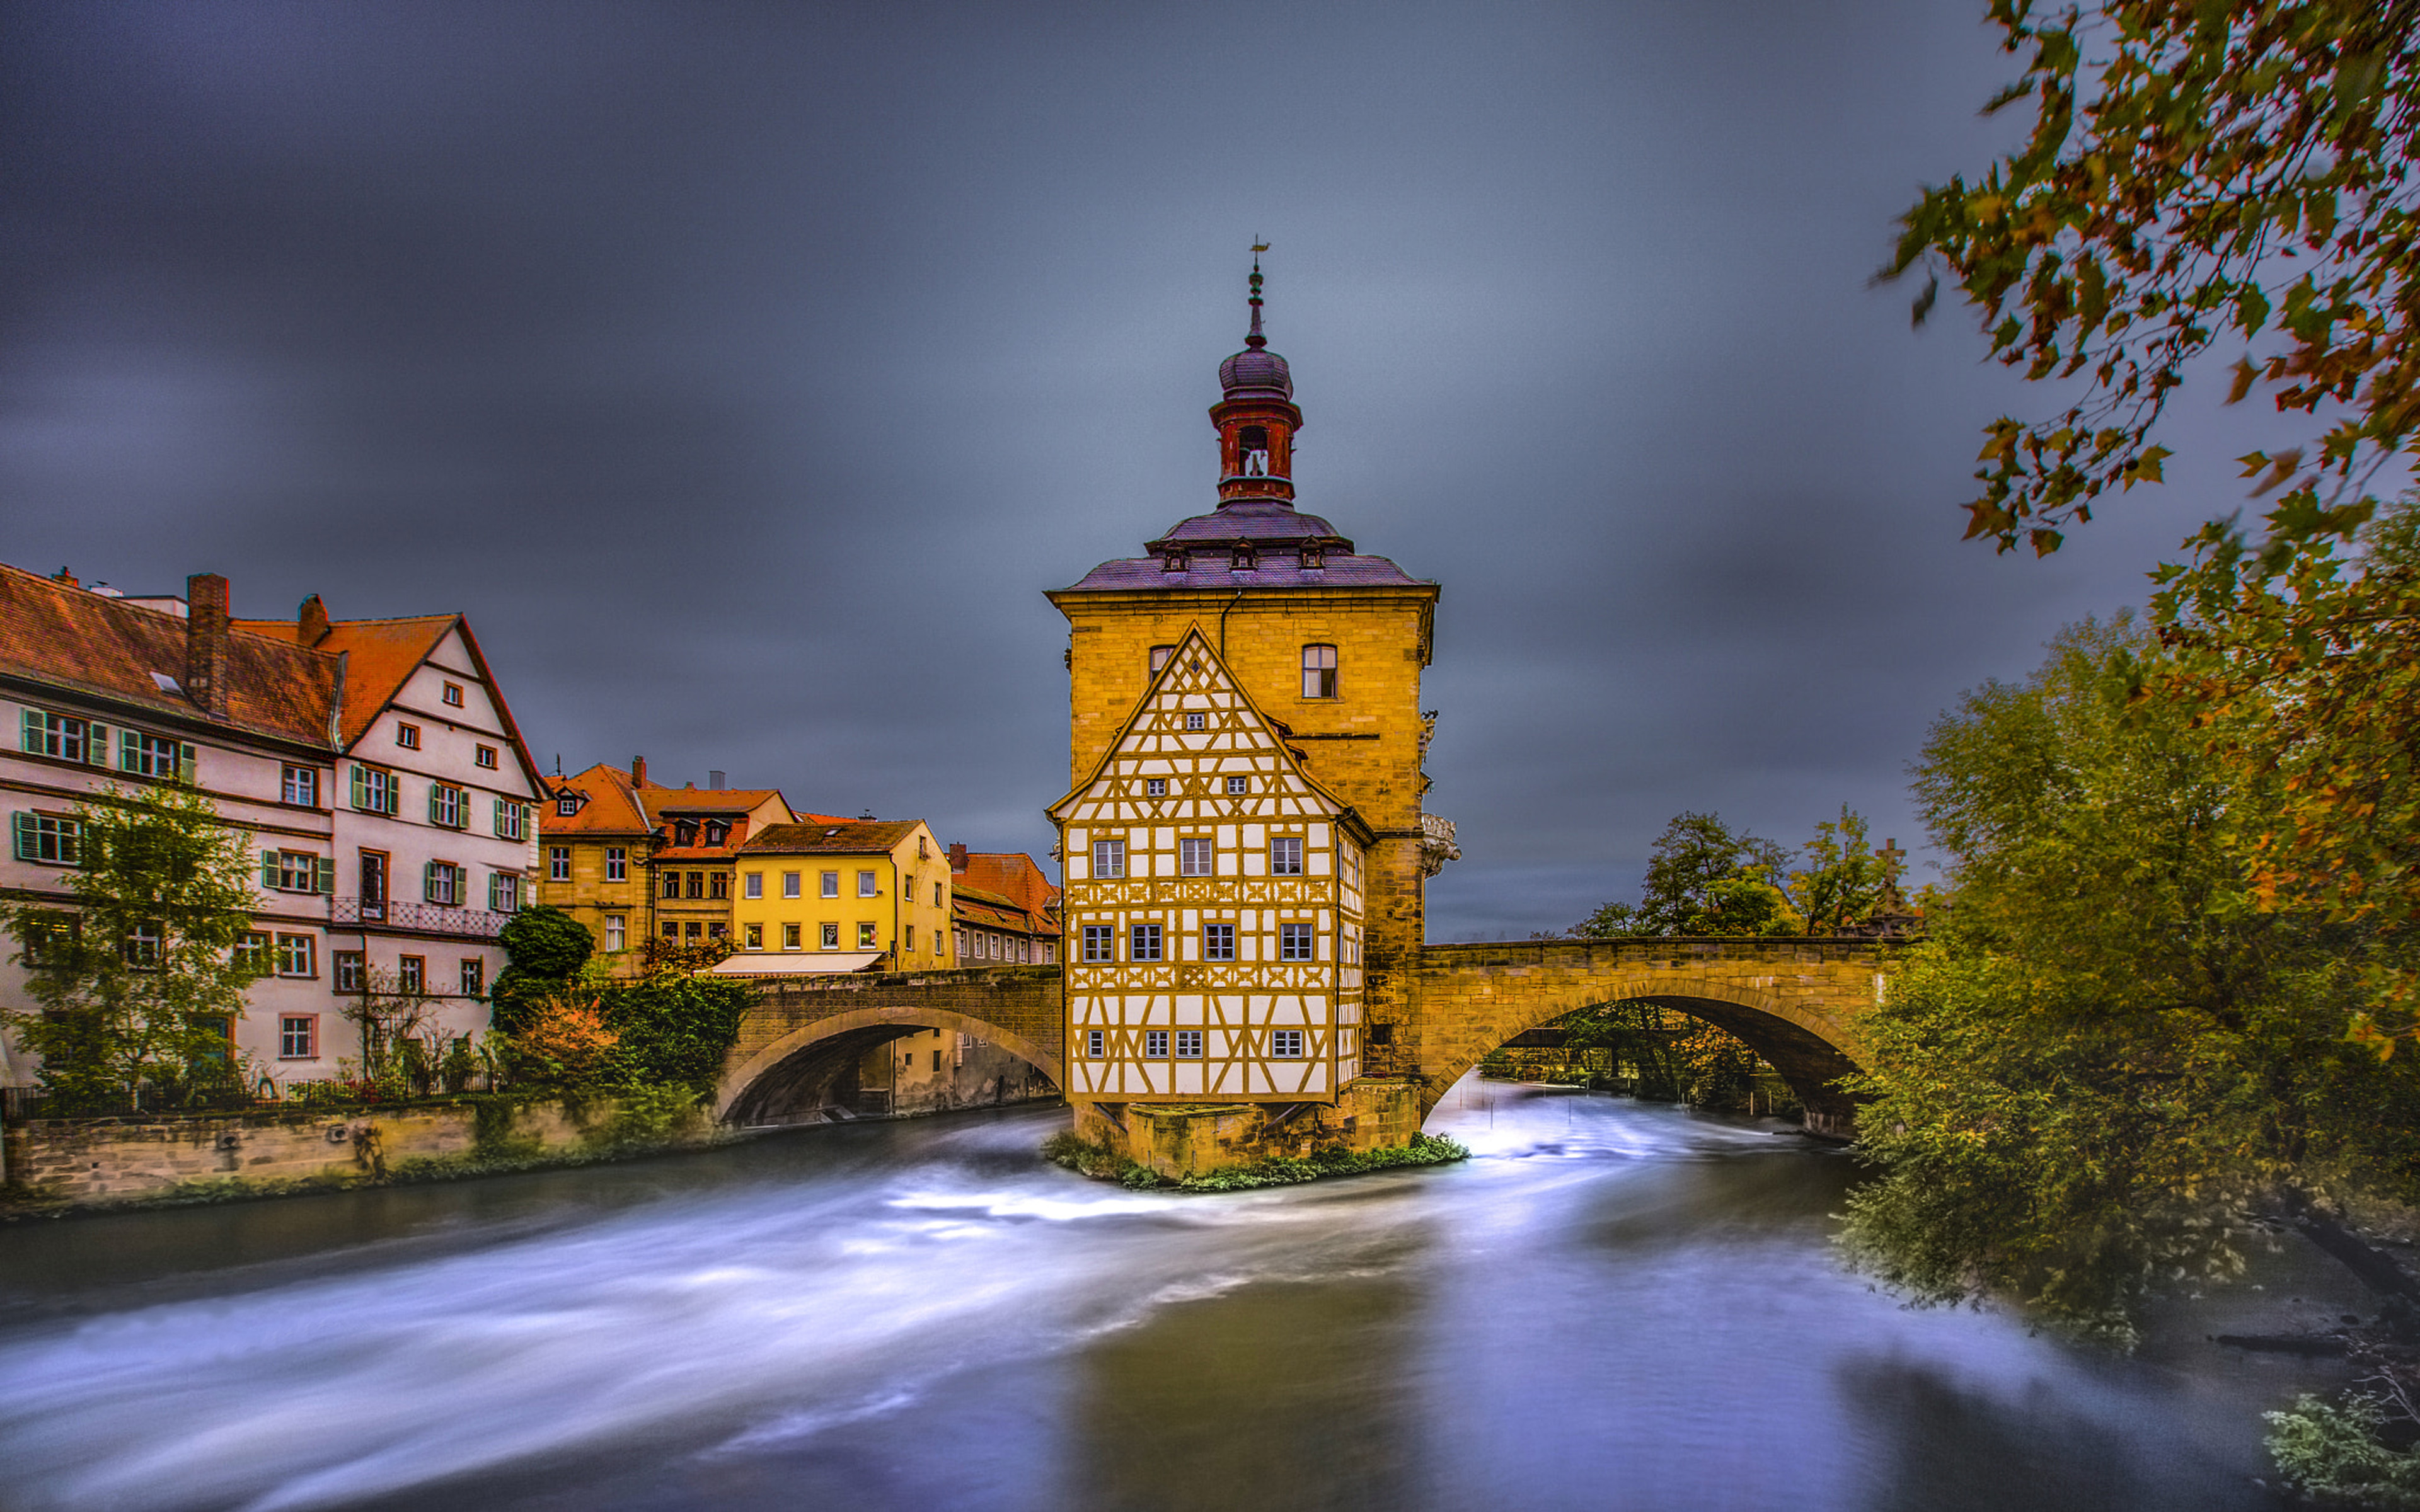 Hong Kong Wallpaper Iphone X Bamberg Is A City In Northern Bavaria Germany Landscape